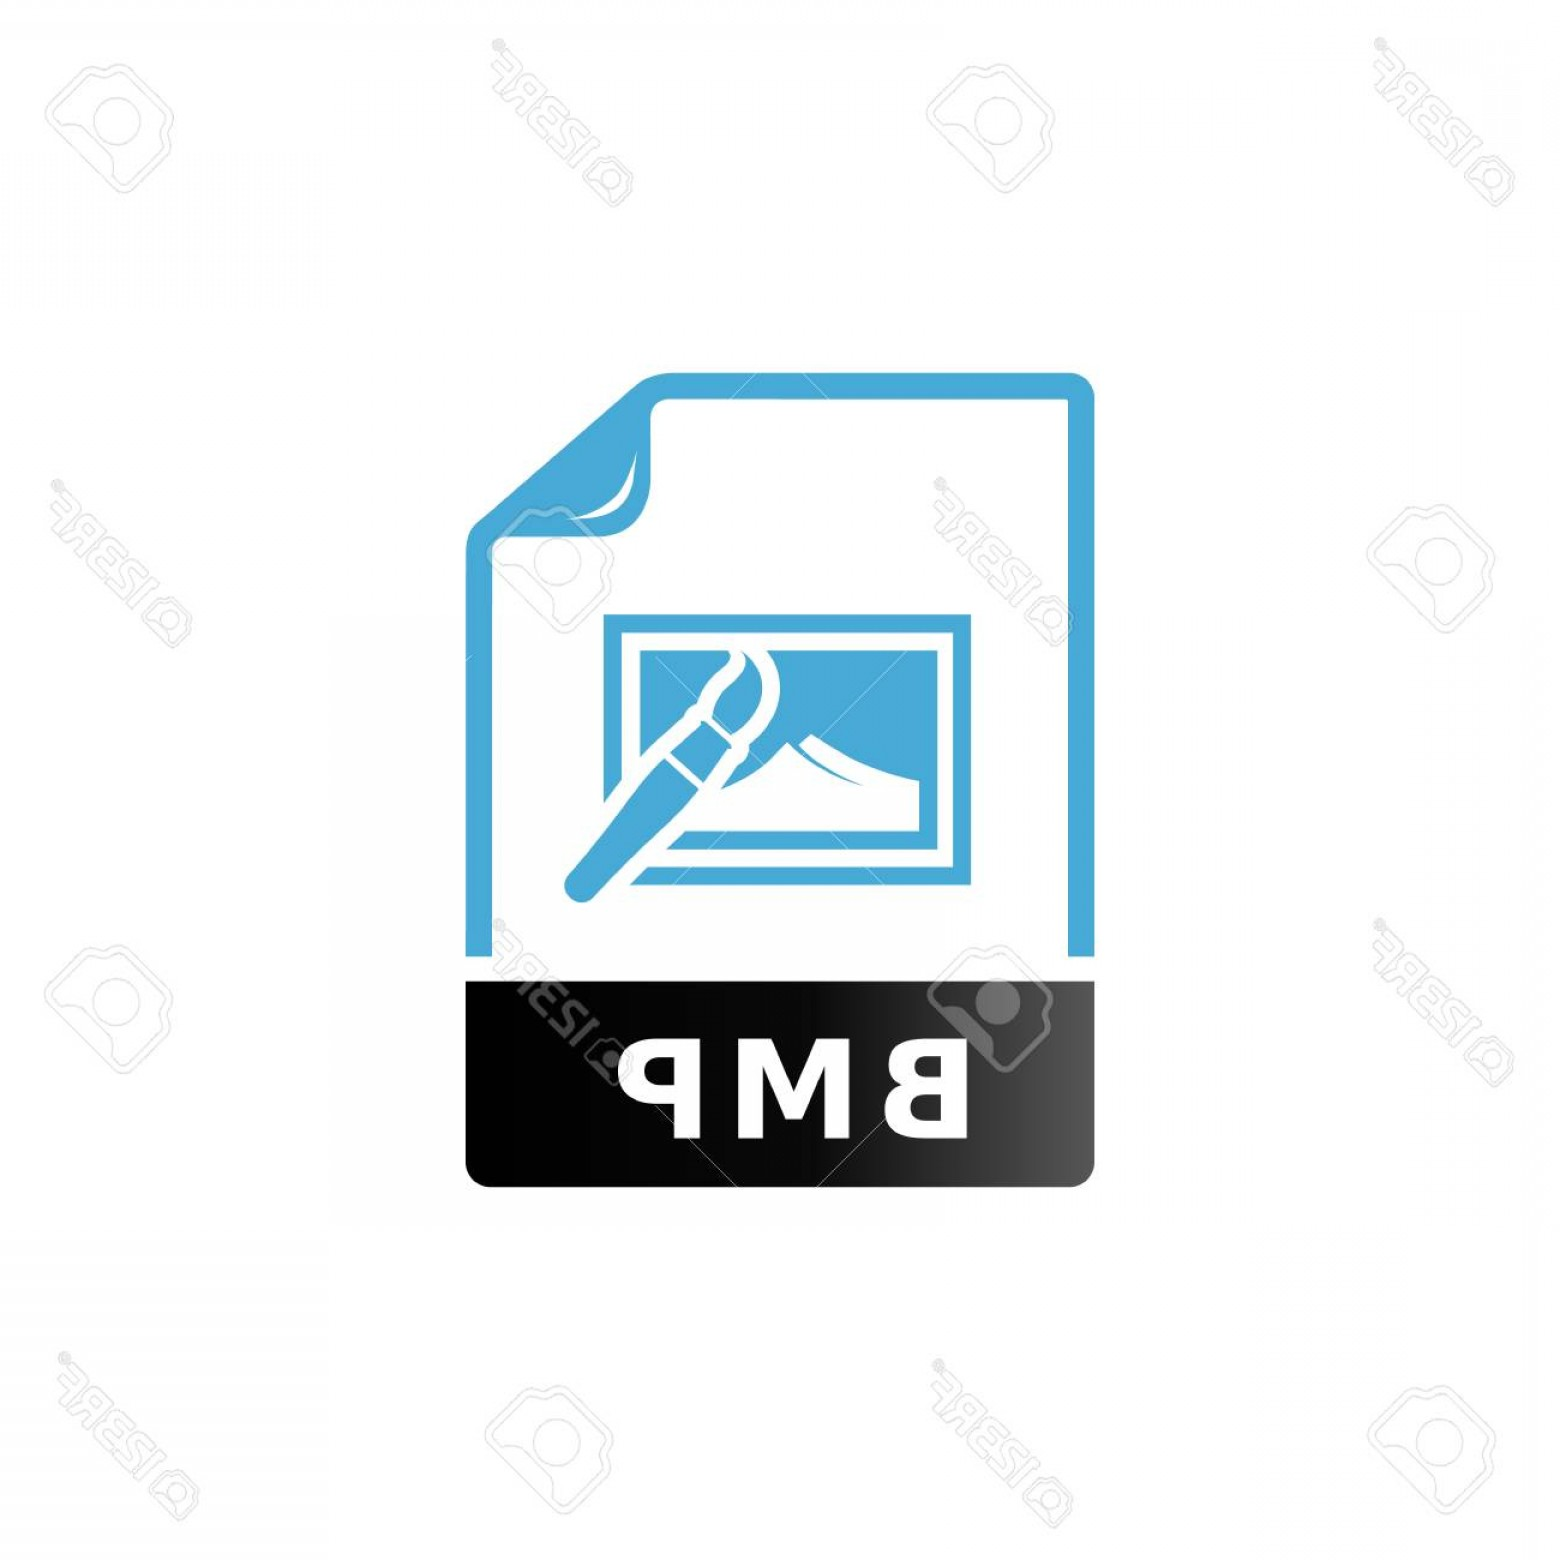 File Formats Vector Artwork: Photostock Vector Picture File Format Icon In Duo Tone Color Image Photography Camera